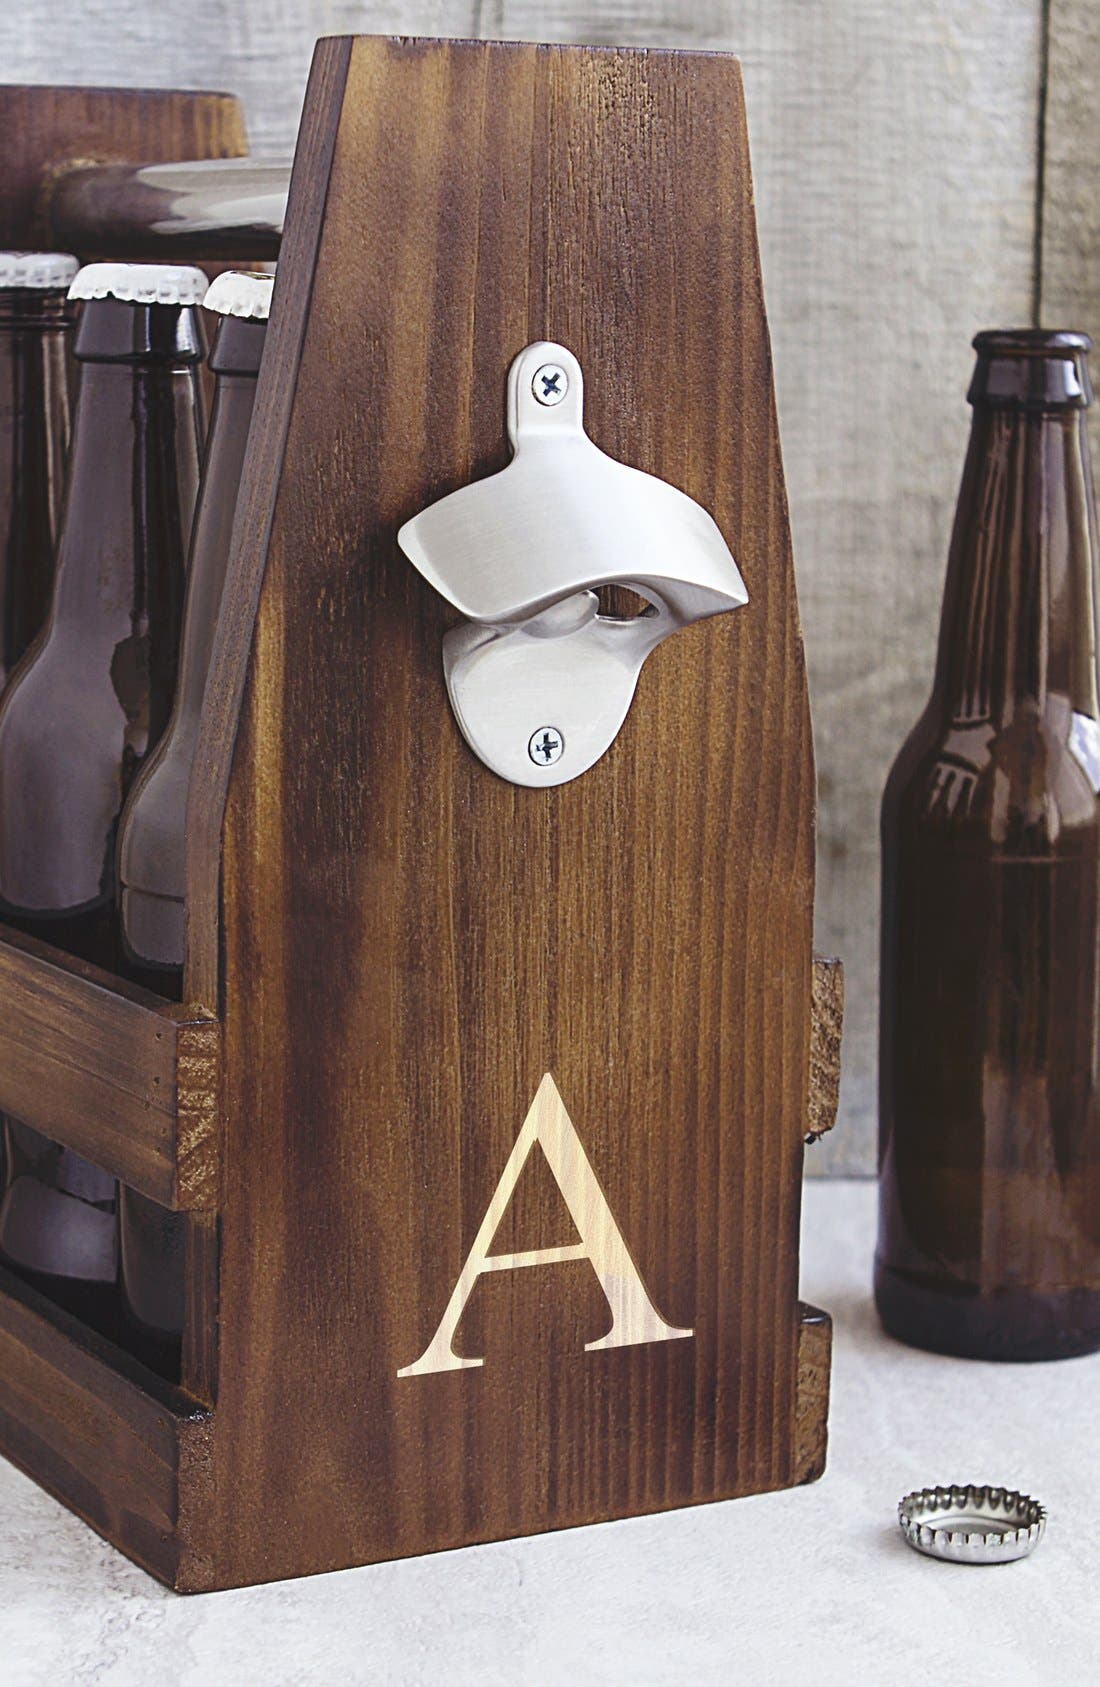 Monogram Craft Beer Carrier,                             Alternate thumbnail 2, color,                             201